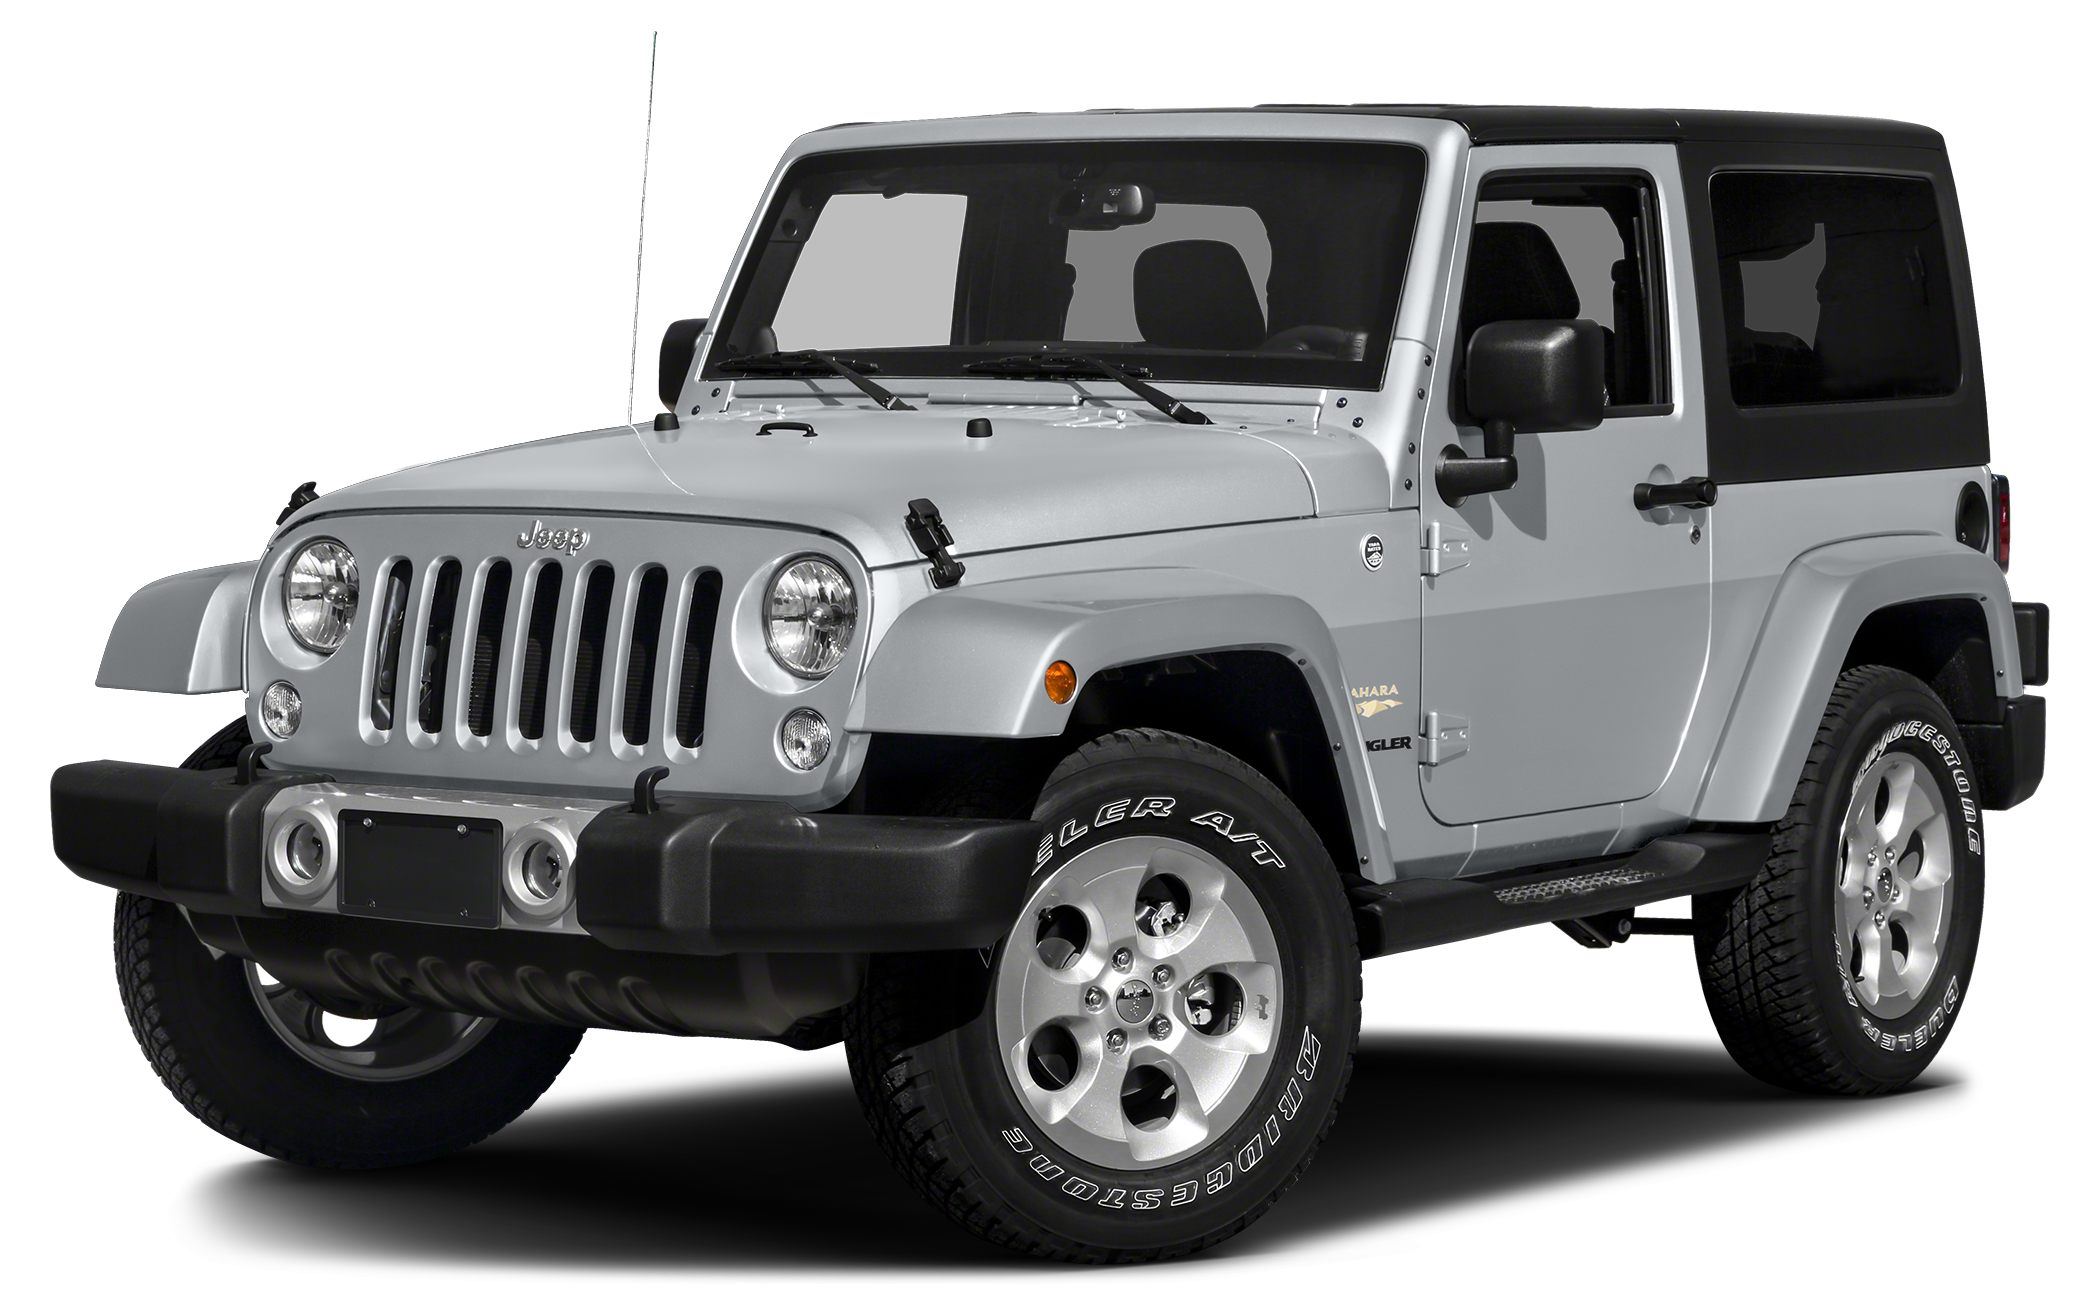 2016 Jeep Wrangler Sport This special Internet buy for price reflects all applicable manufacturer